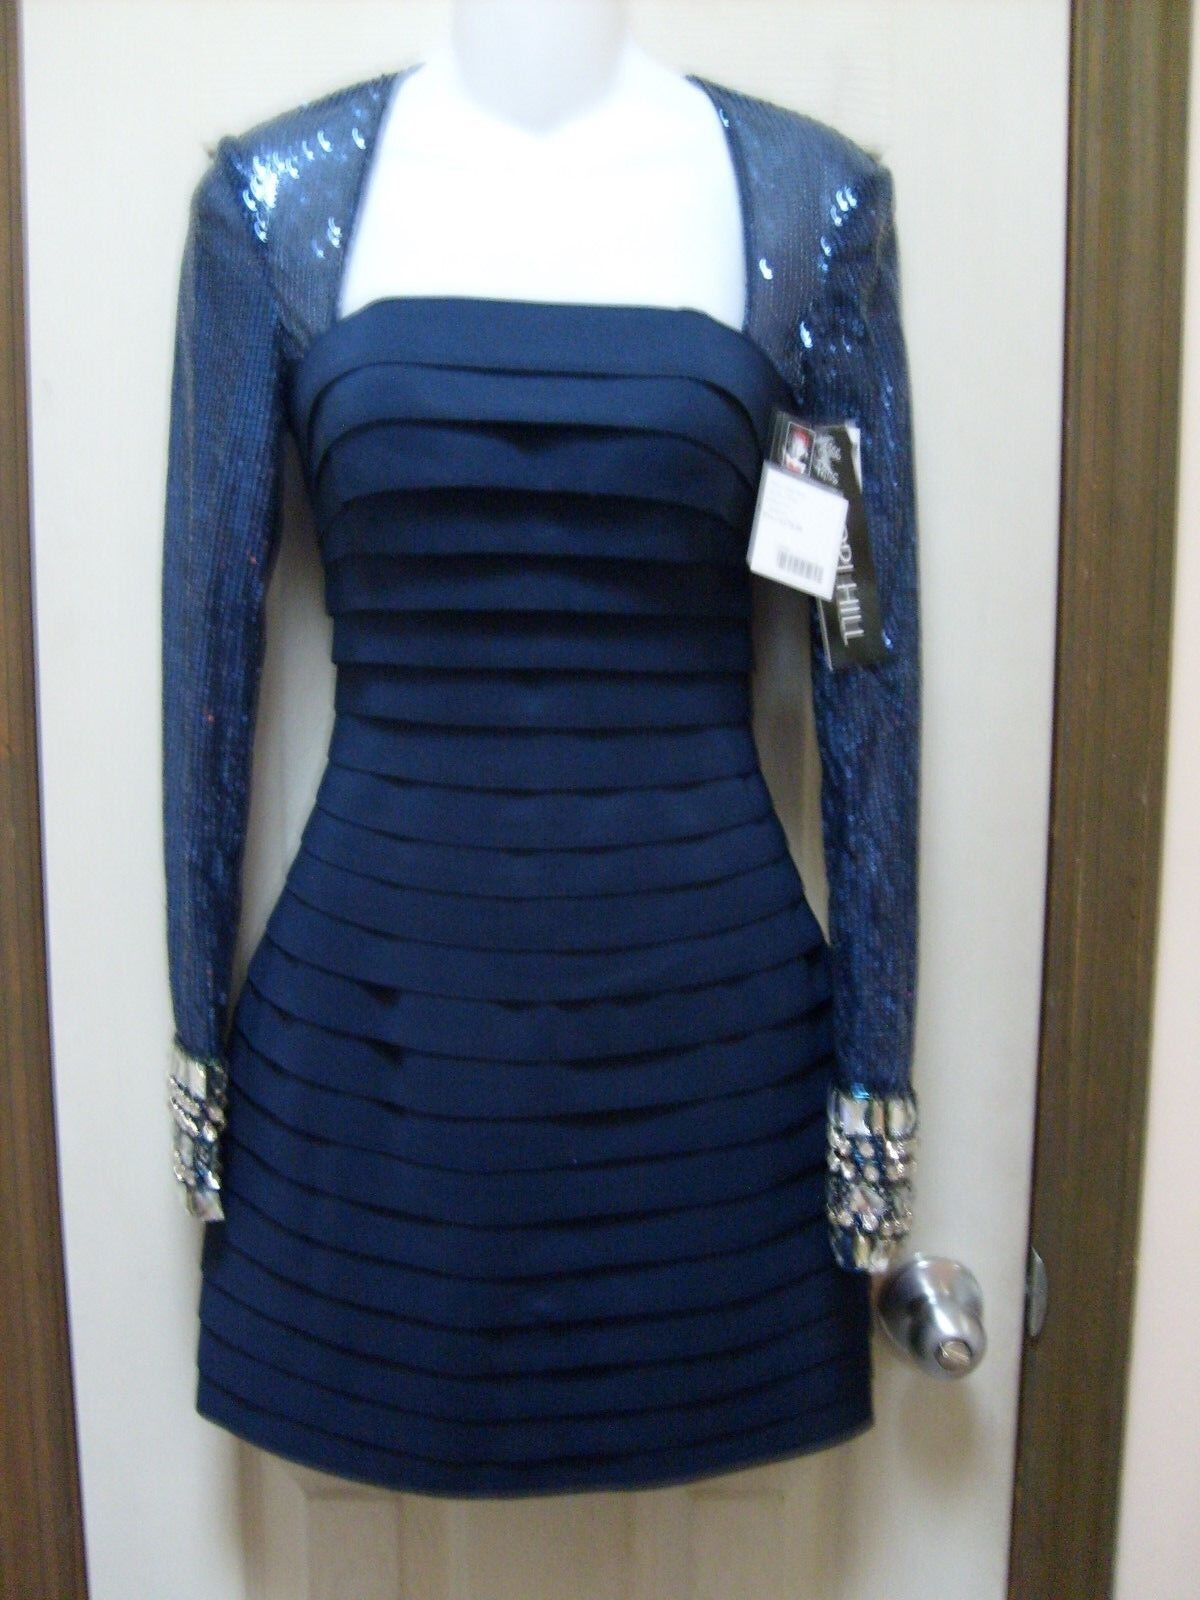 Sherry Hill Short Prom Dress- Size 0. New c/ tag retail